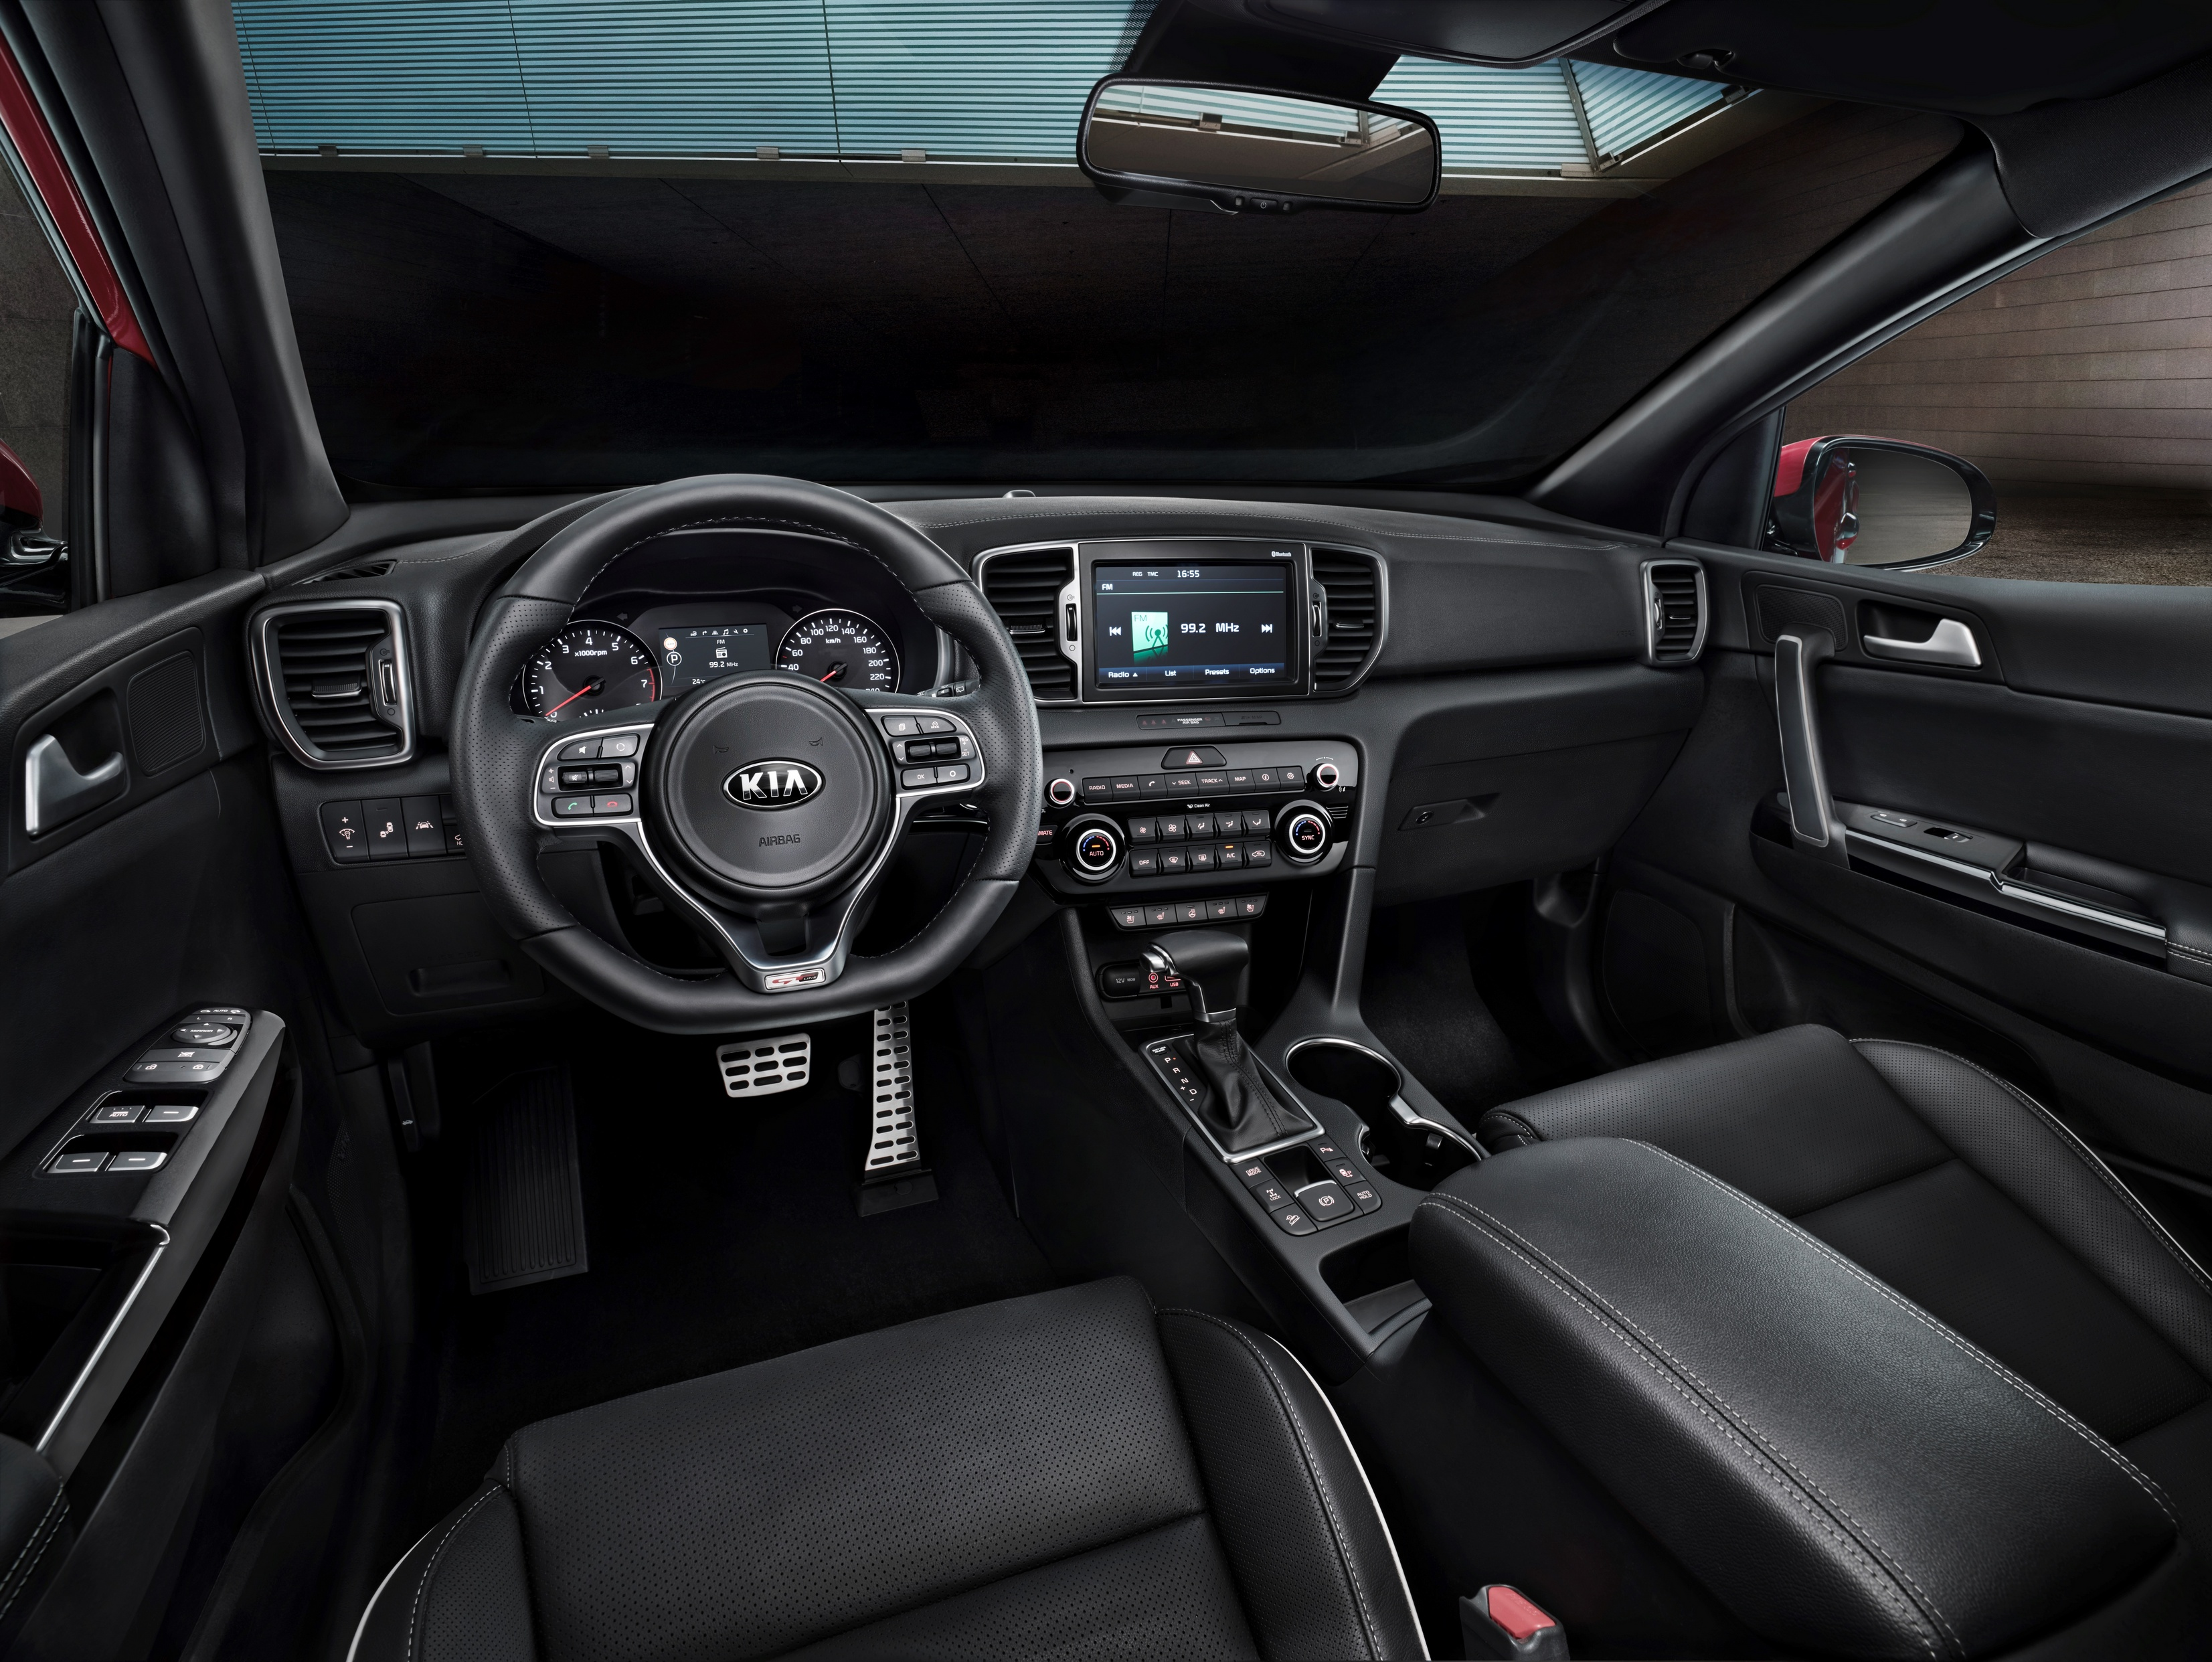 2016 sportage full specs interior revealed (2)